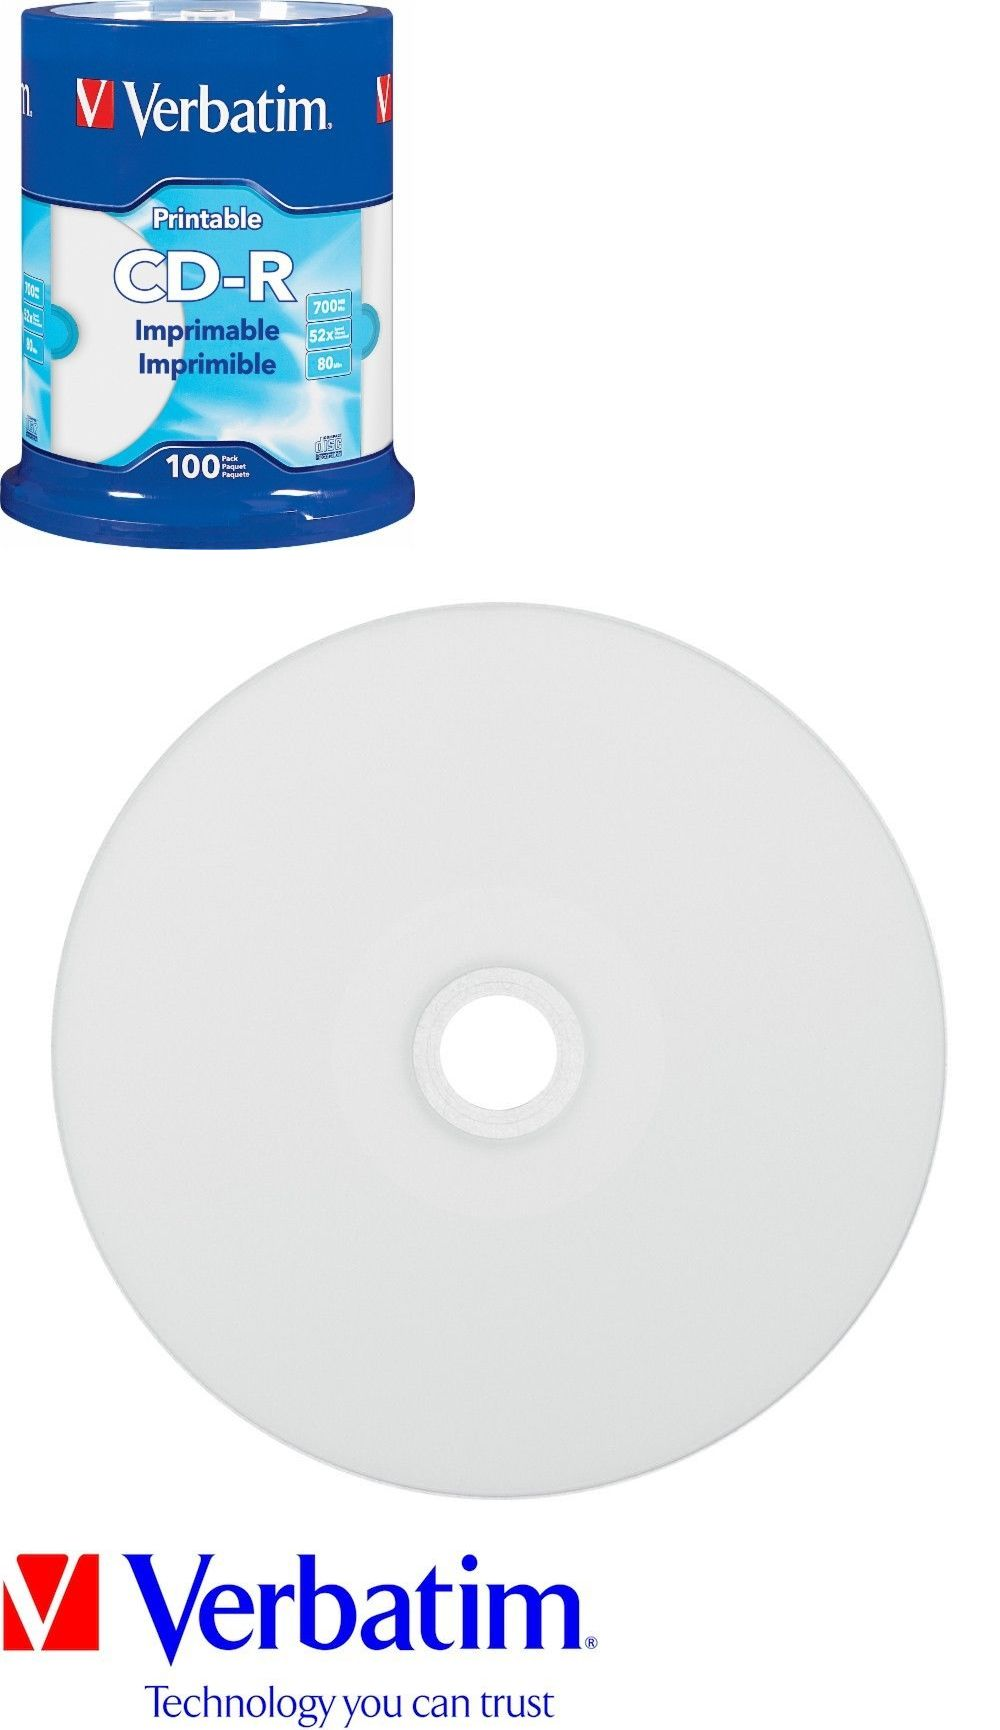 photo about Verbatim Cd R Printable known as Blank Media and Add-ons 80133: Verbatim Cd-R Cdr 52X